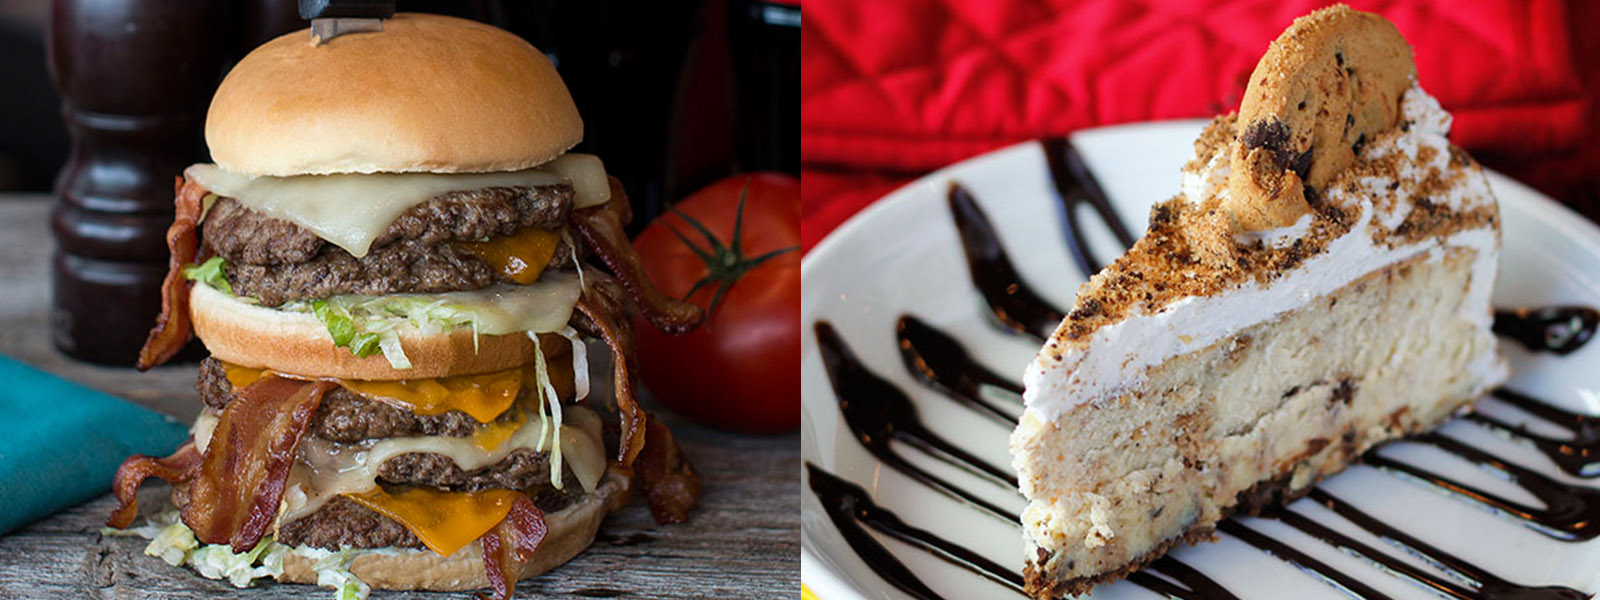 Montreal Restaurant food photography, big juicy burger shot with 5 patties, lots of bacon and cheese, burger tower